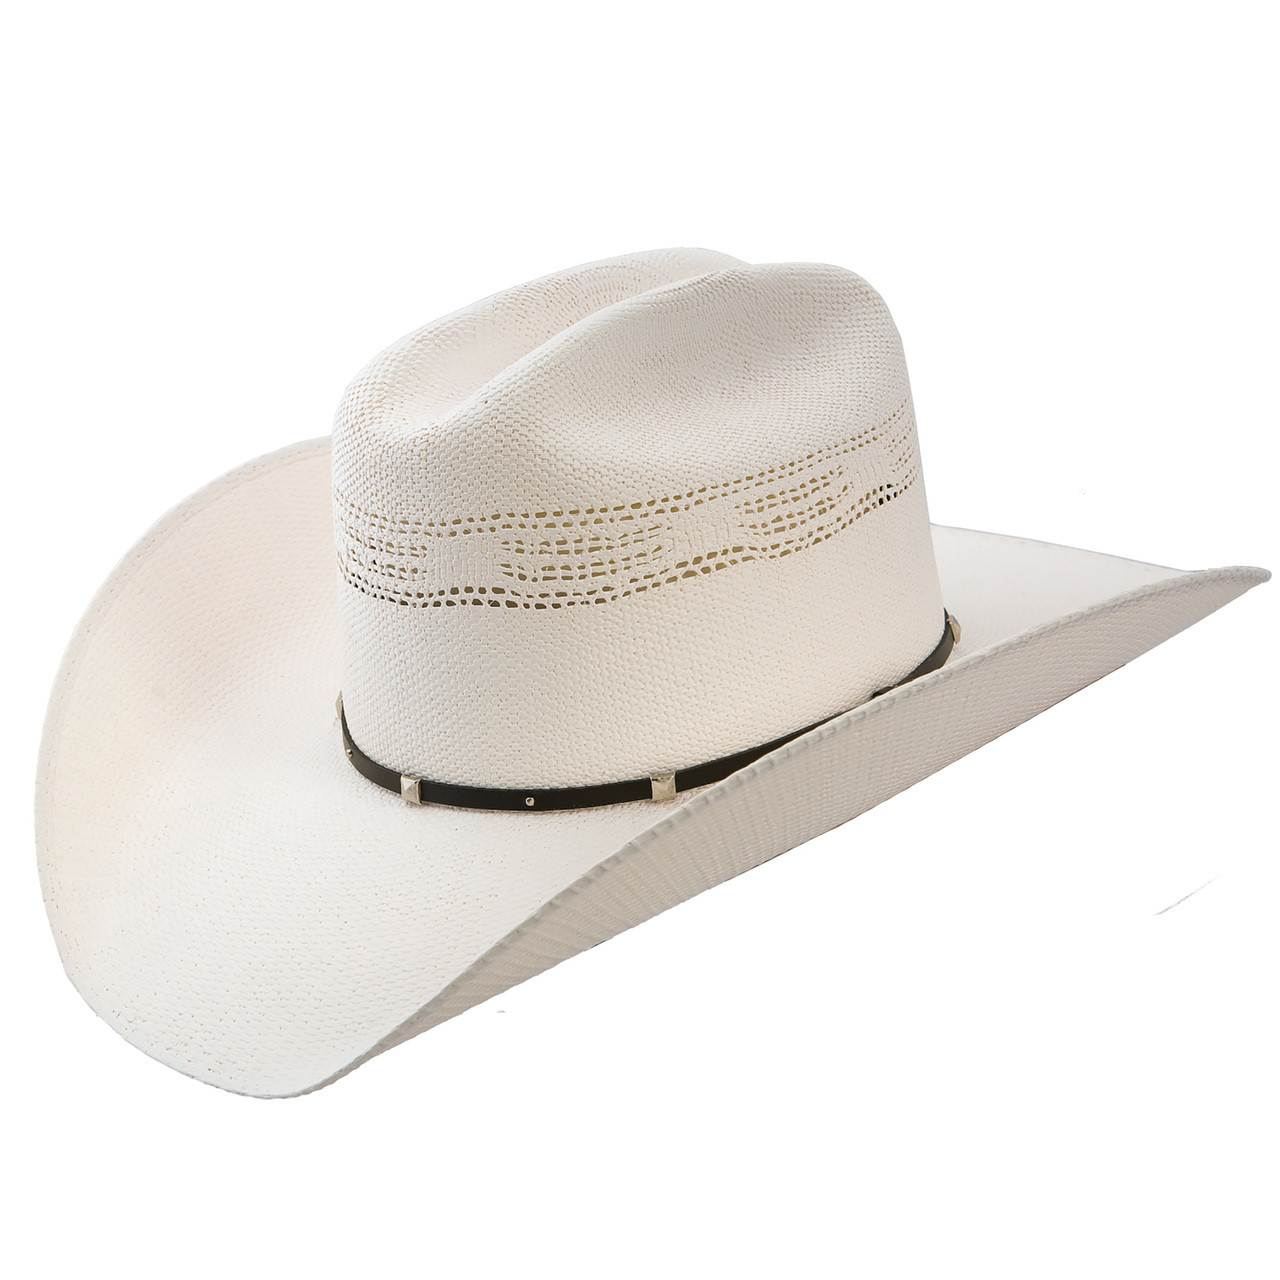 8aa7a72ee808e Stetson Mens Hats - White Horse – Bangora Straw Cowboy Hat - Billy s ...